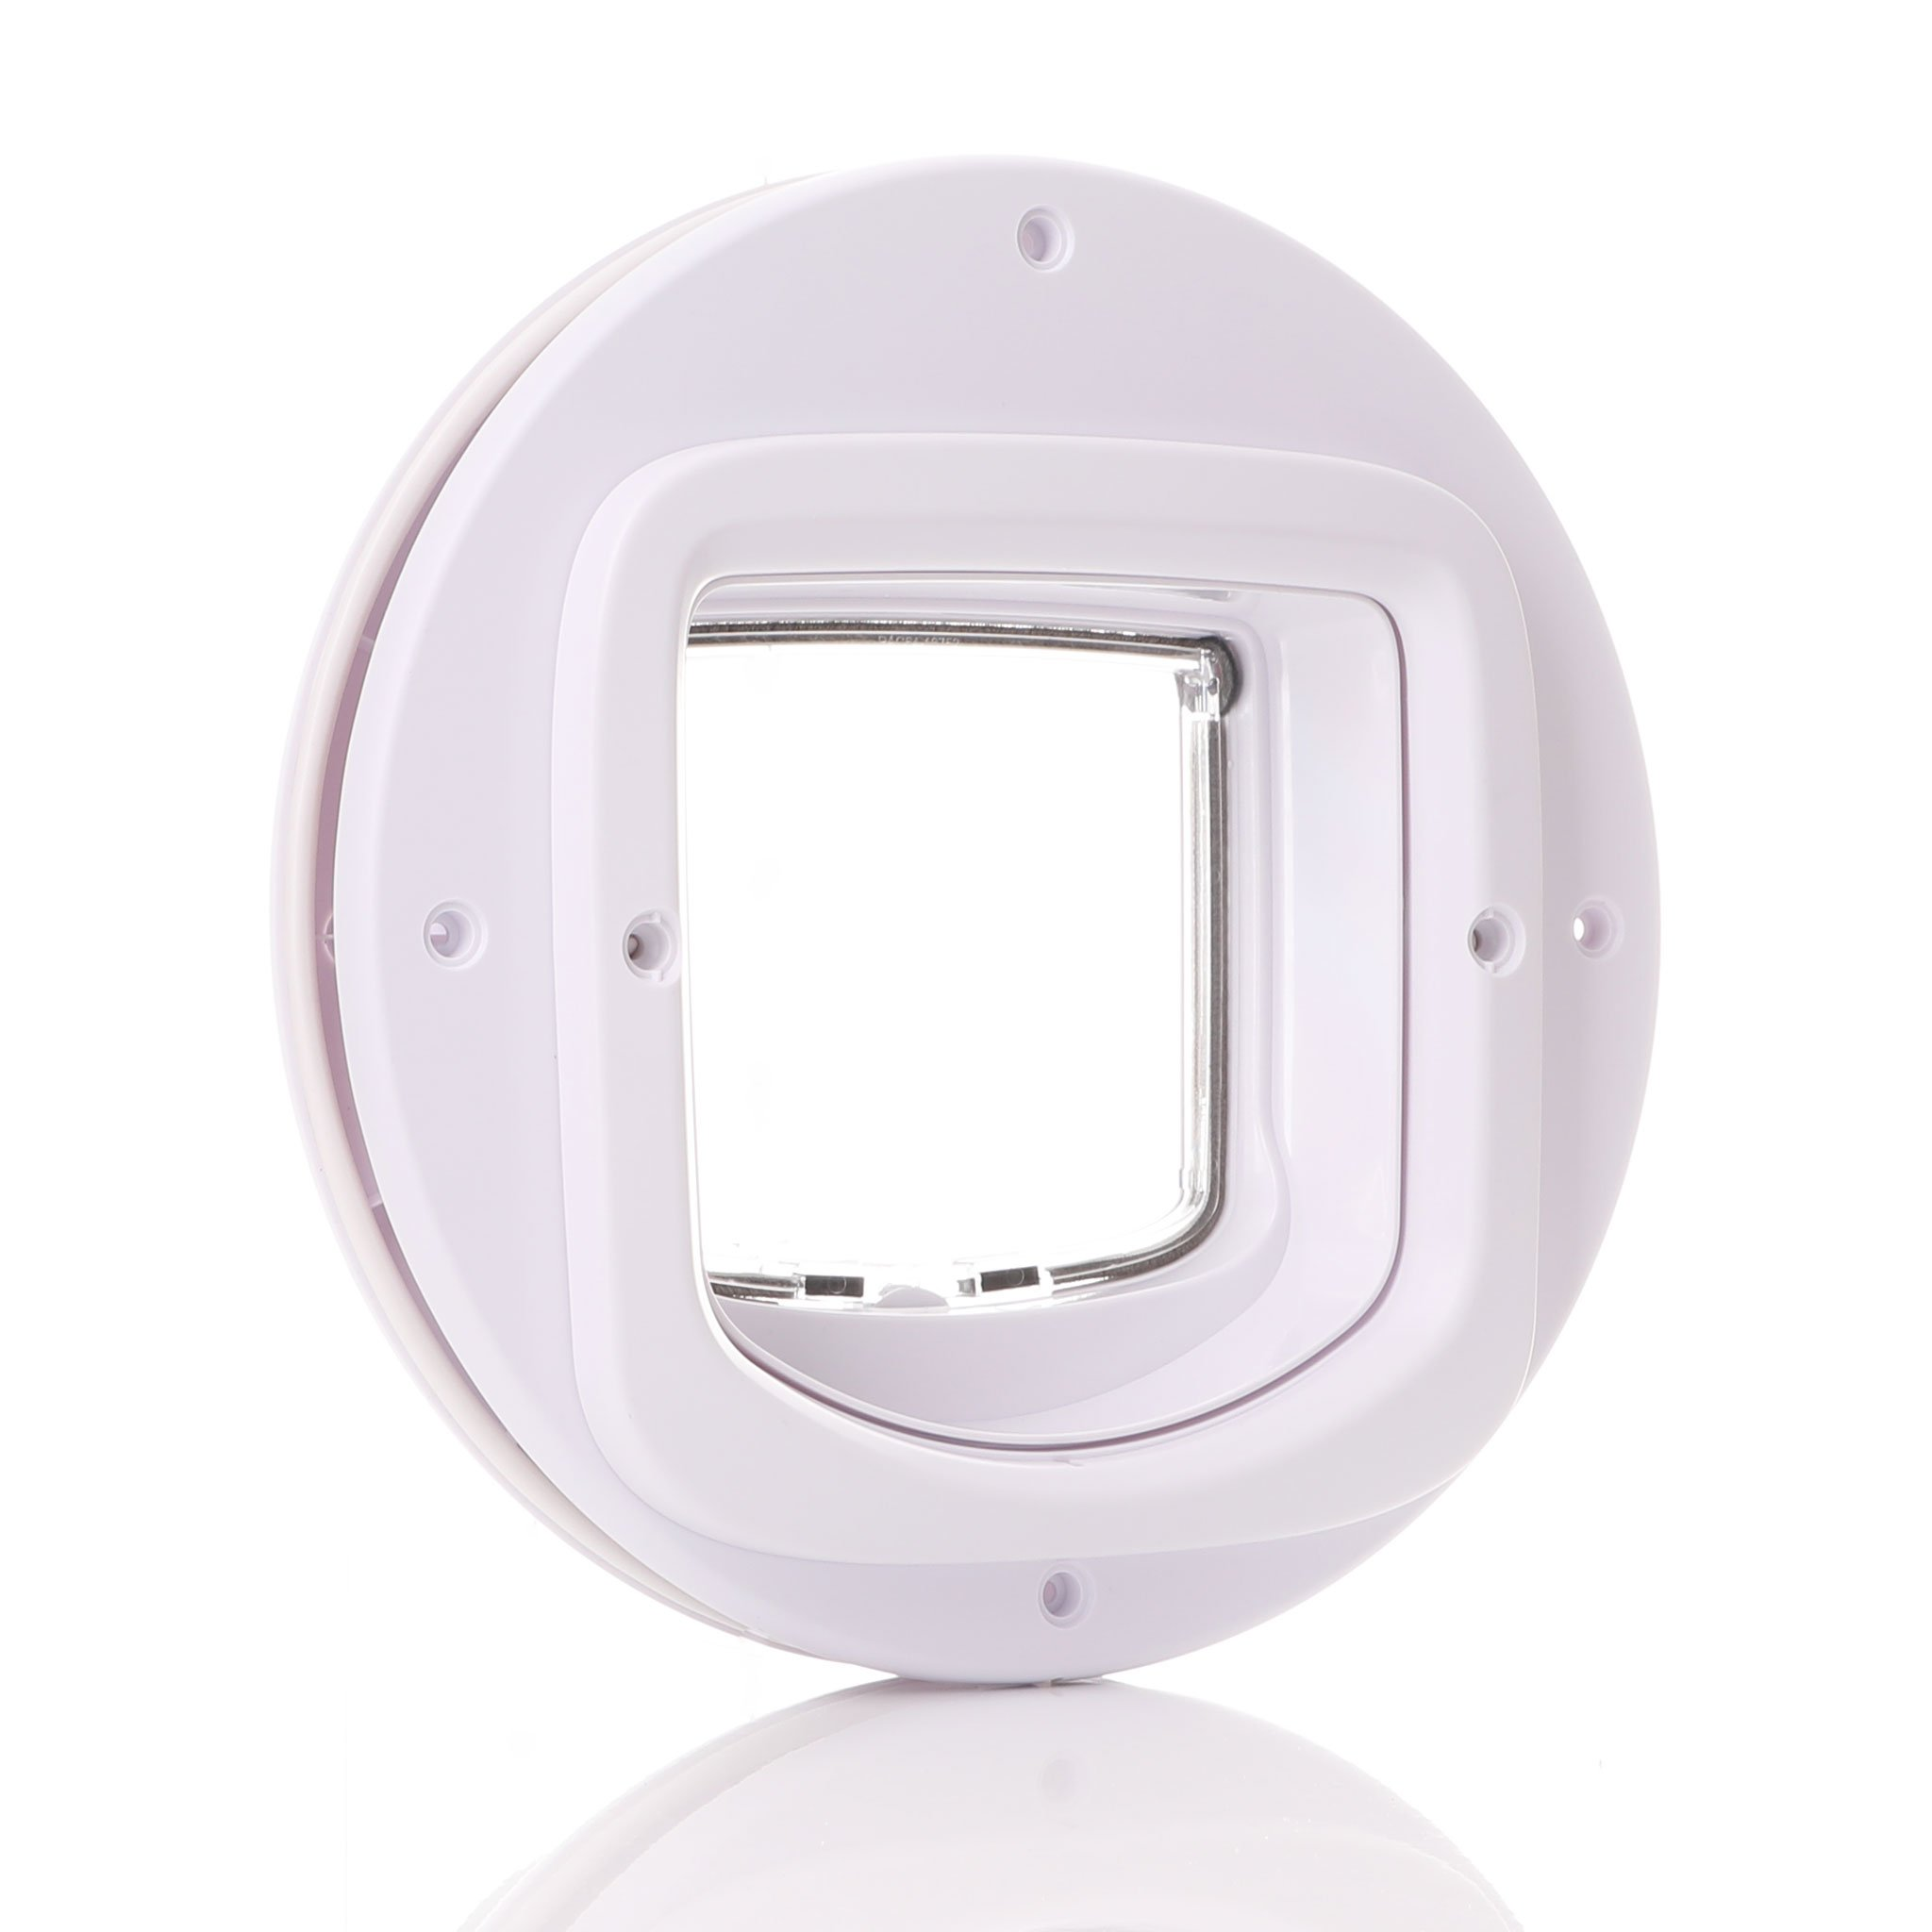 Shows the outside looks of a cat flap in glass.